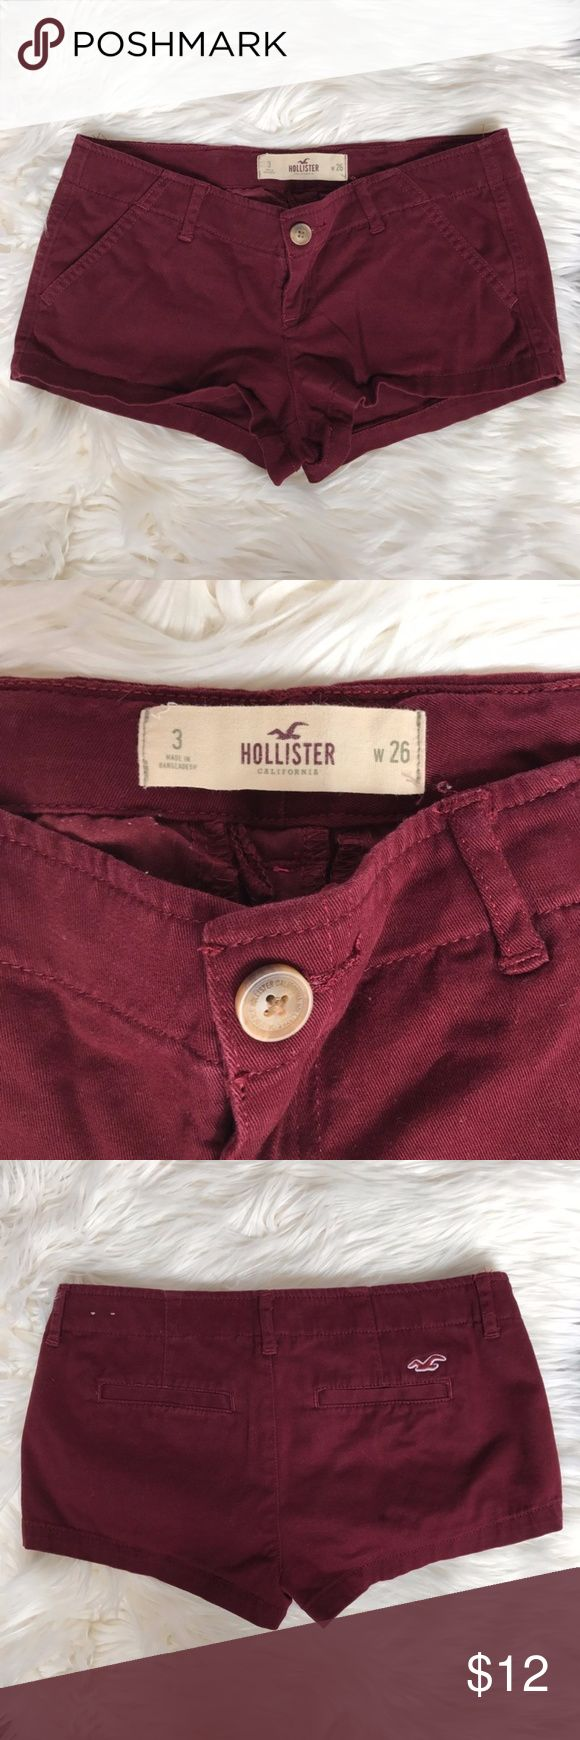 Hollister Maroon Shorts Size 3 W26 Item: 